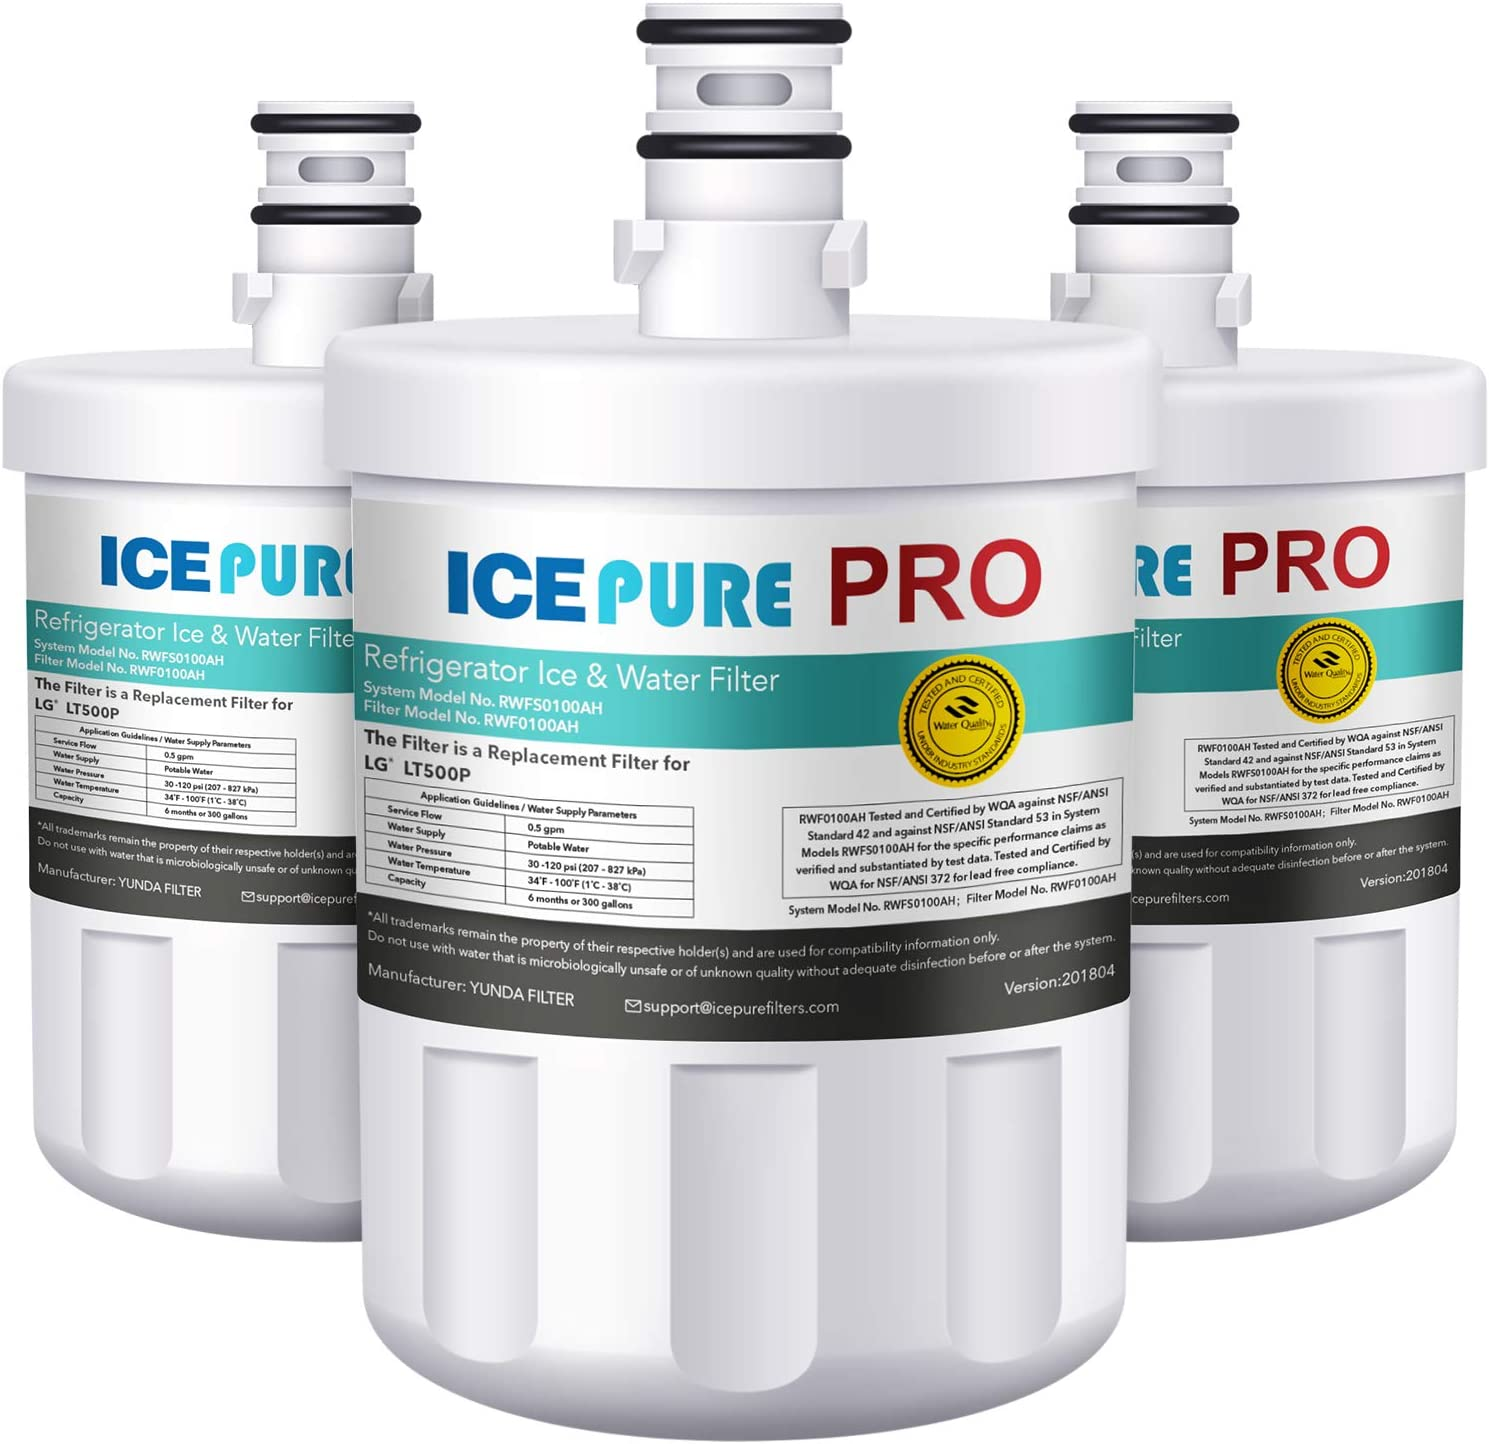 ICEPURE PRO LT500P NSF 53&42 Certified Refrigerator Water Filter Replacement for LG LT500P,5231JA2002A,ADQ72910901, Kenmore GEN11042FR-08, 9890, 46-9890,LFX25974ST, lfx25973s, RWF0100A 3PACK